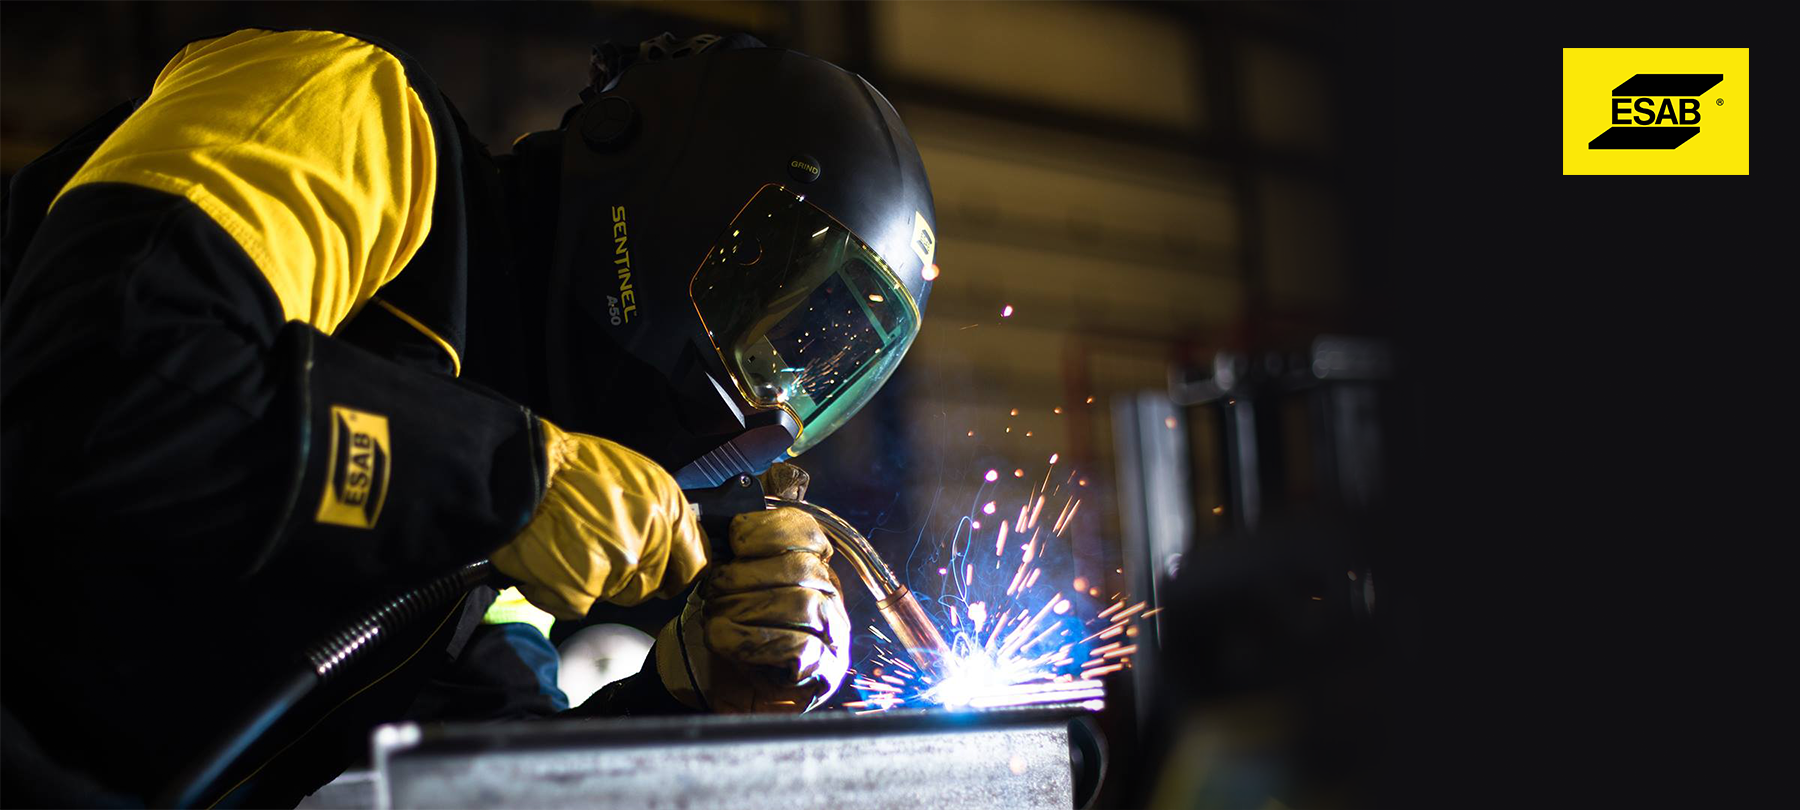 A welder with an ESAB Sentinel A50 MIG welding a project